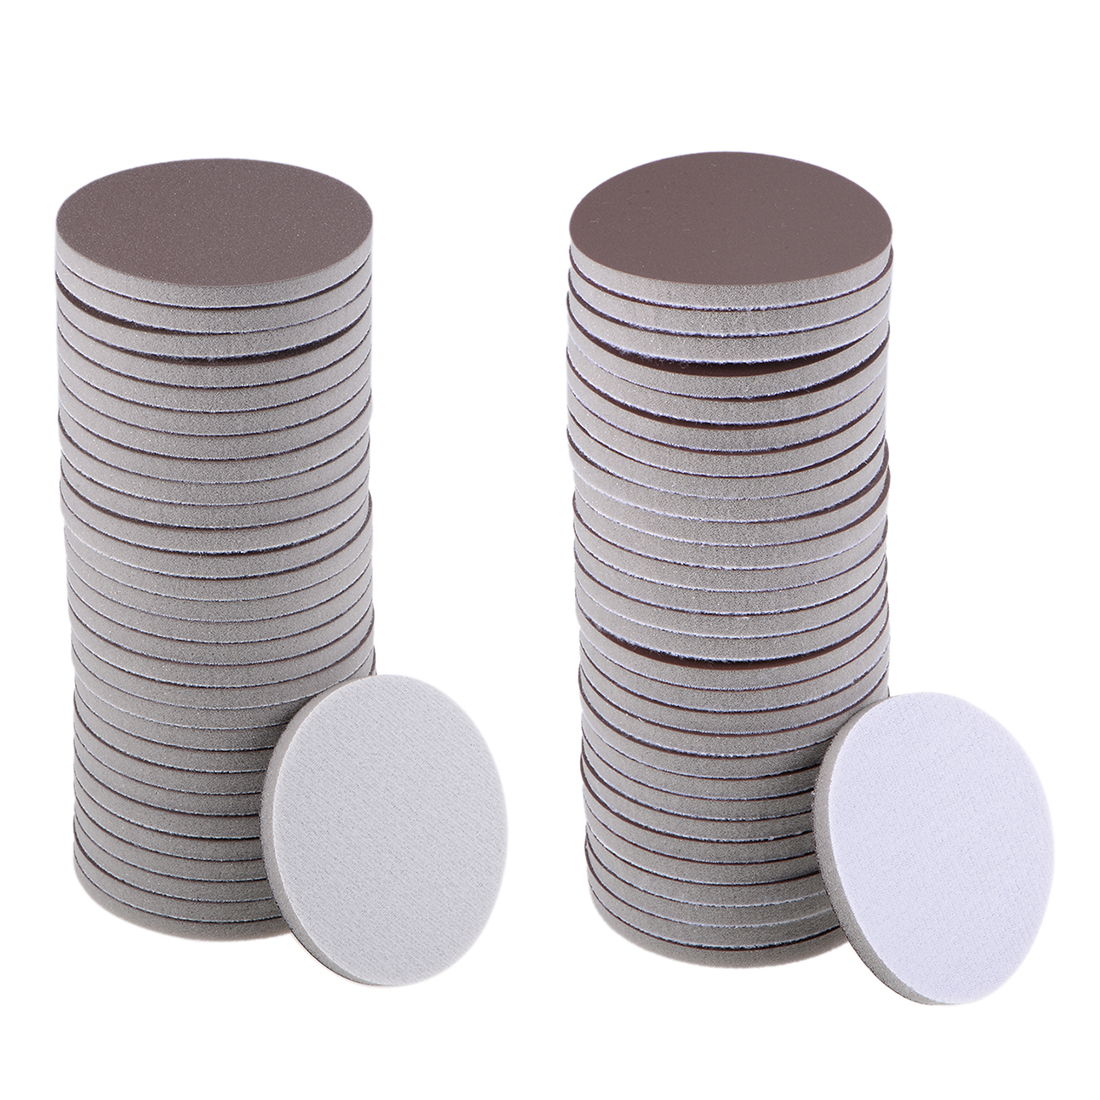 Uxcell 30Pcs 3-Inch Sanding Sponge Hook And Loop Sanding Disc Wet Dry For Car Wood Drywall Metal Brown Corundum Wood Metal